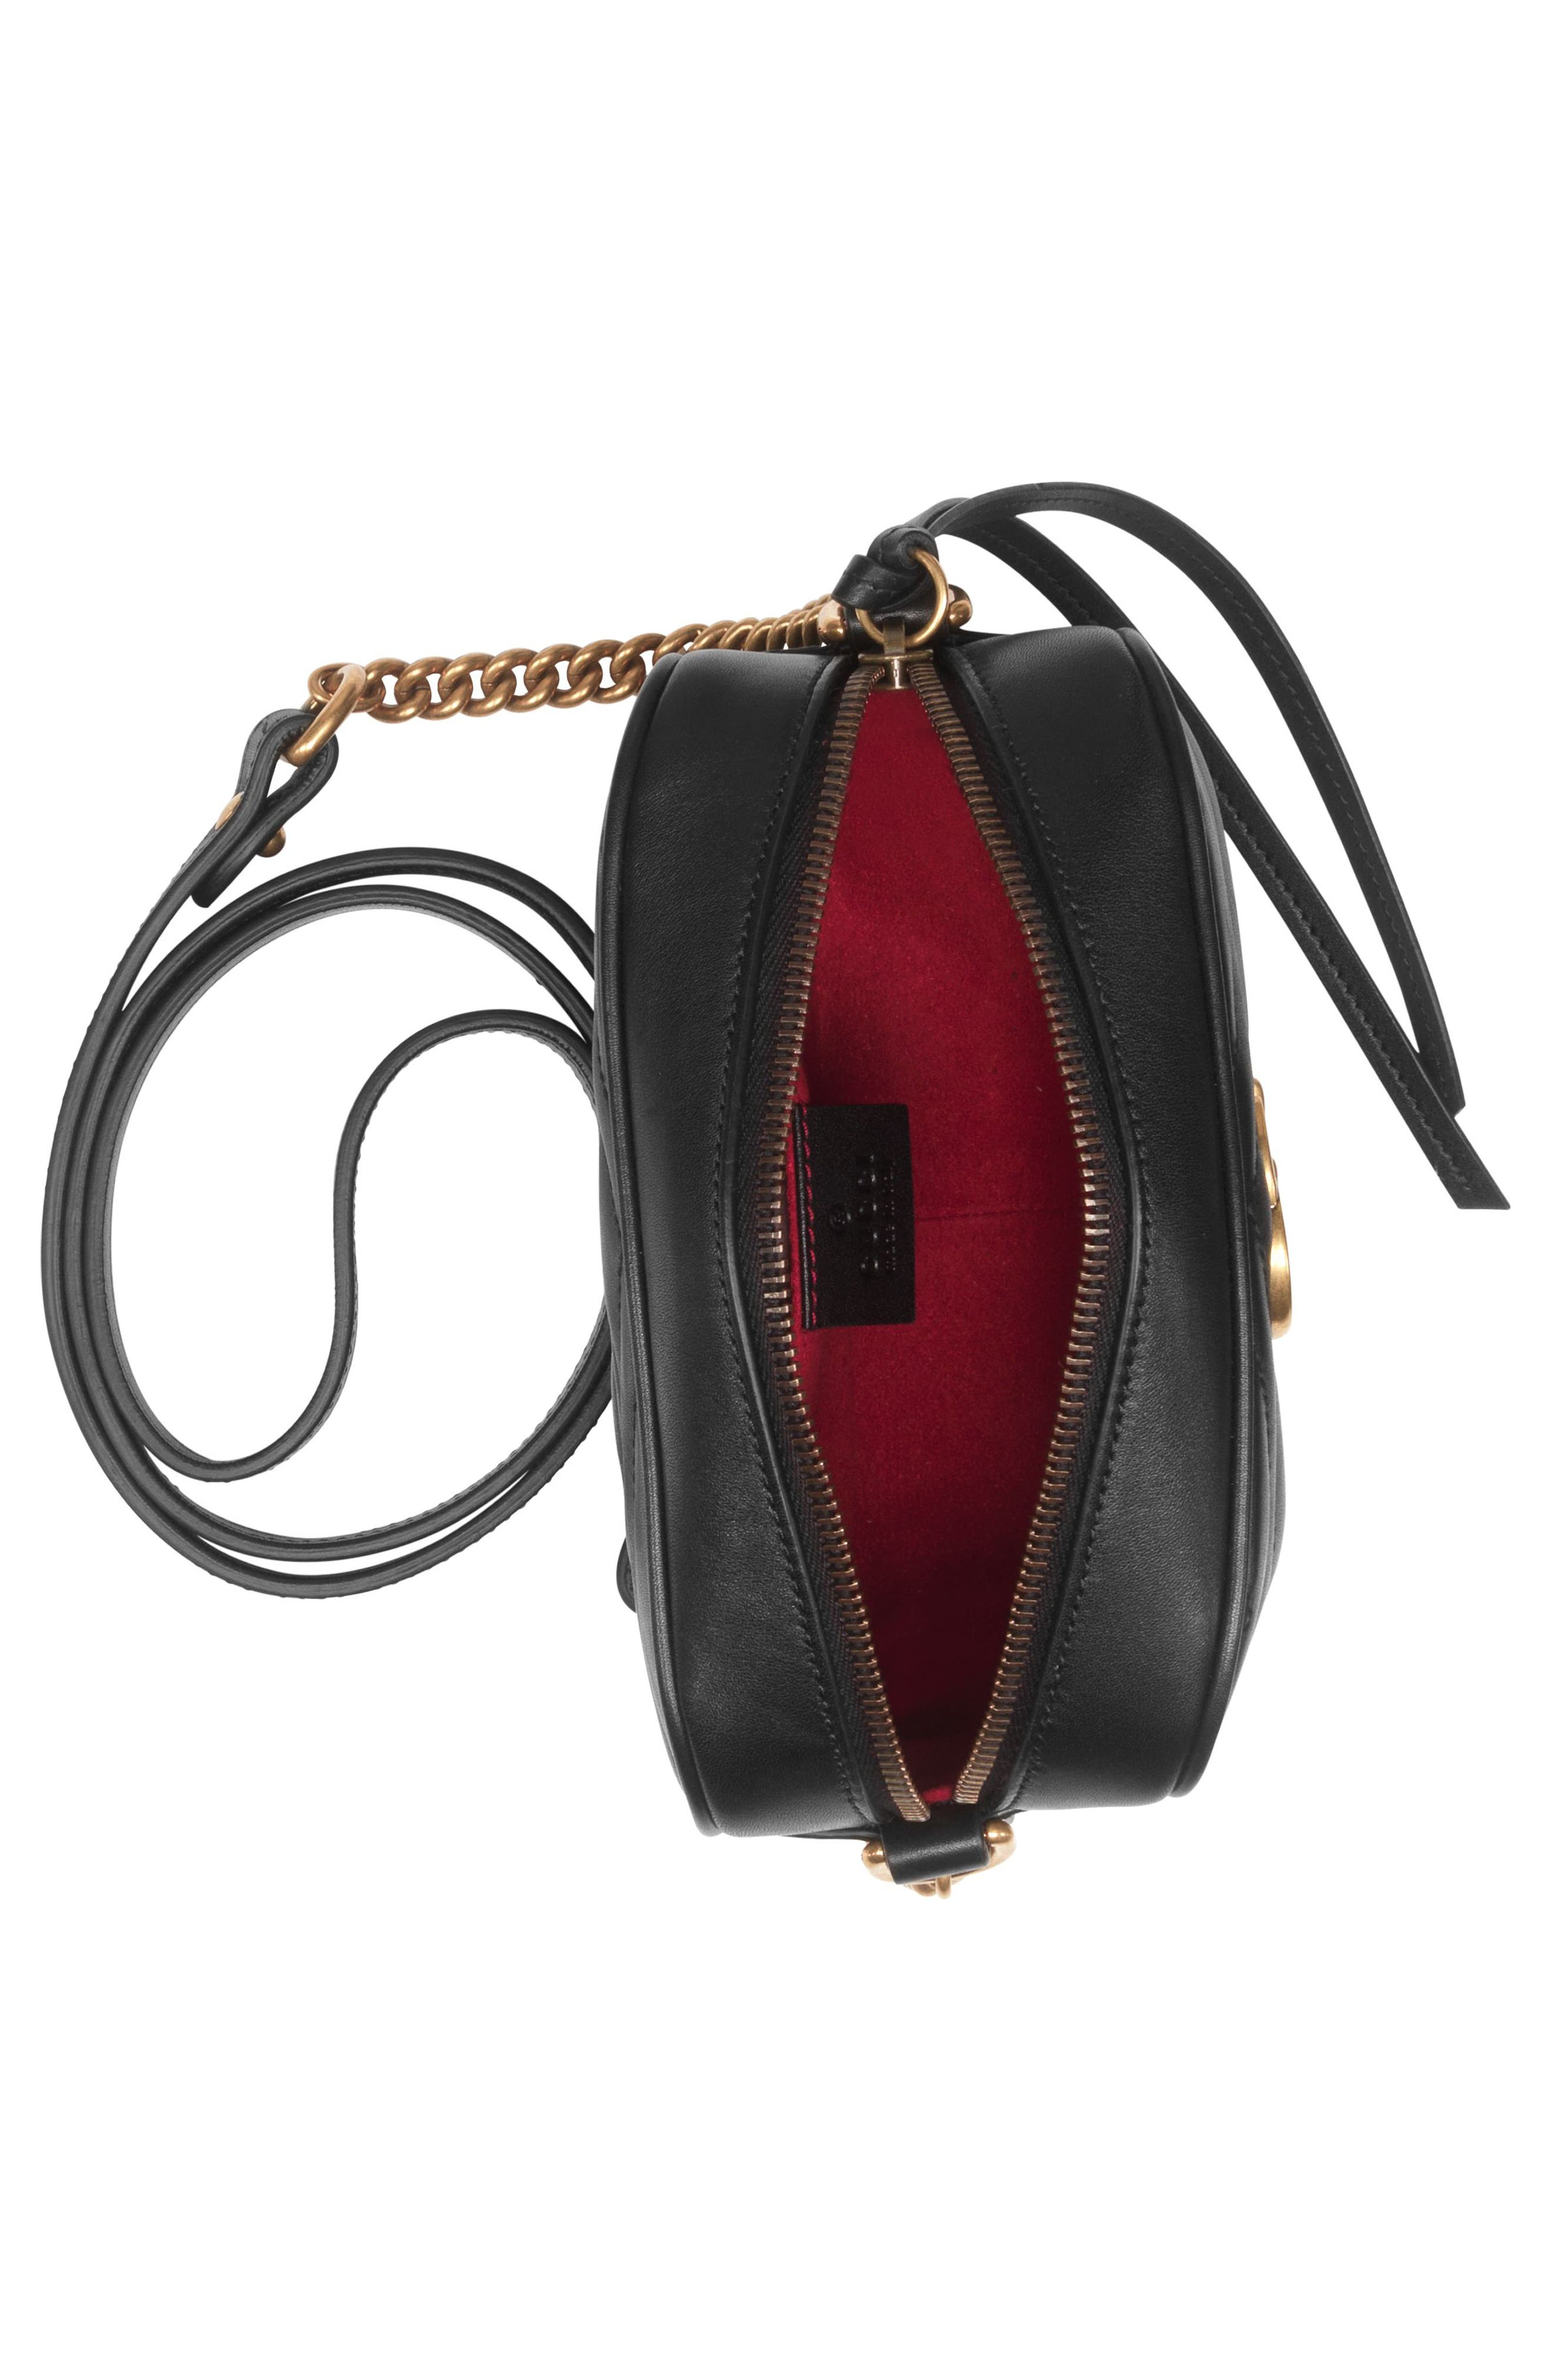 GG Marmont 2.0 Matelassé Leather Shoulder Bag,                             Alternate thumbnail 4, color,                             NERO